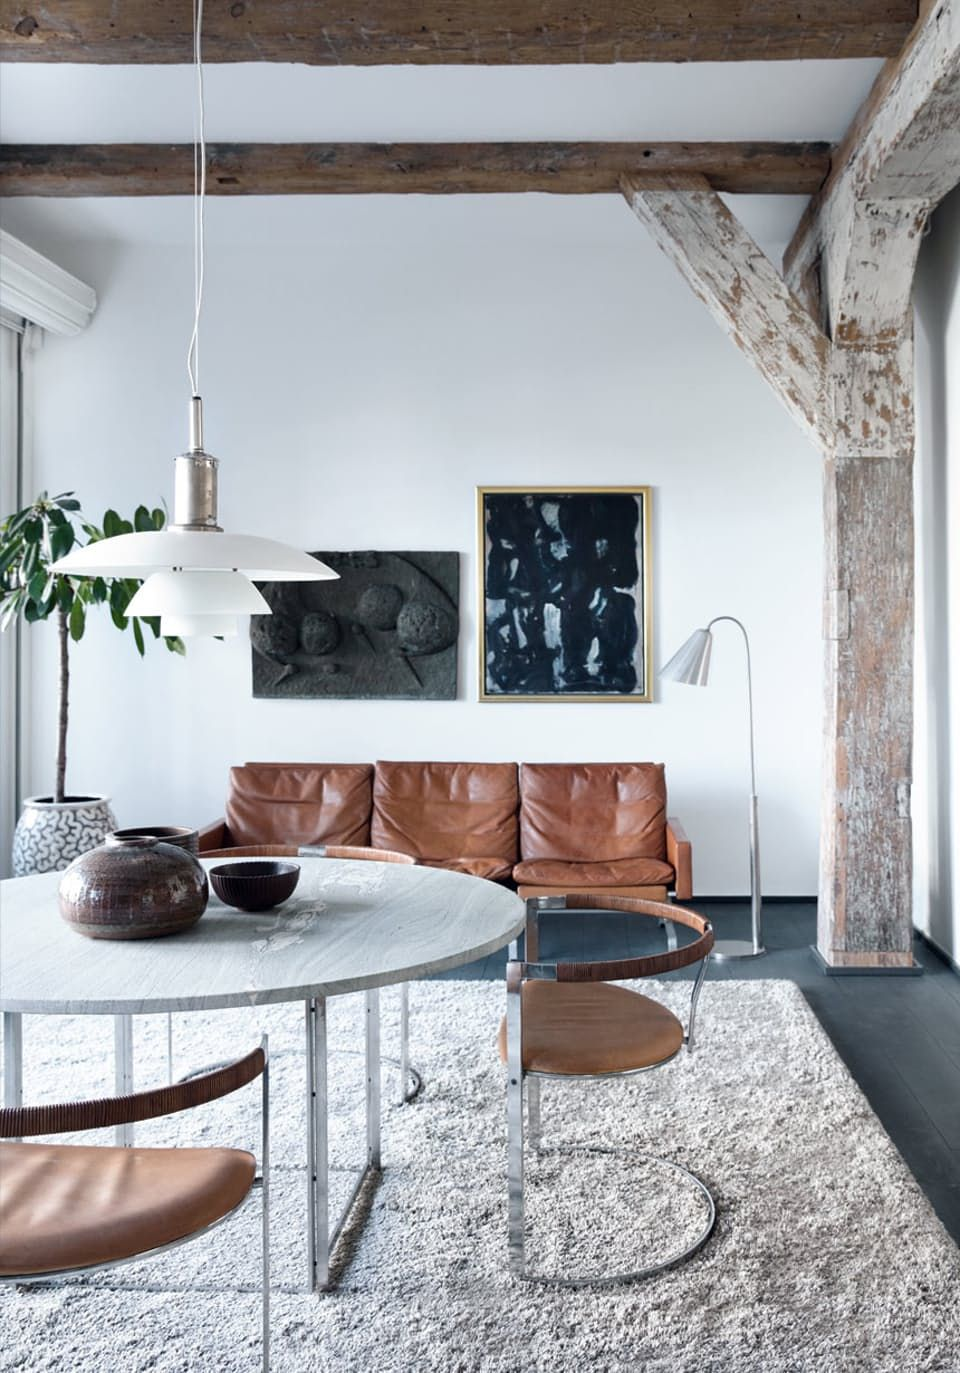 Room Filled With Danish Design Kold Christensen Produced Kjærholm Pk54 Dining Table Four Chairs Designed By Fabricius Kastholm Sofa Pk31